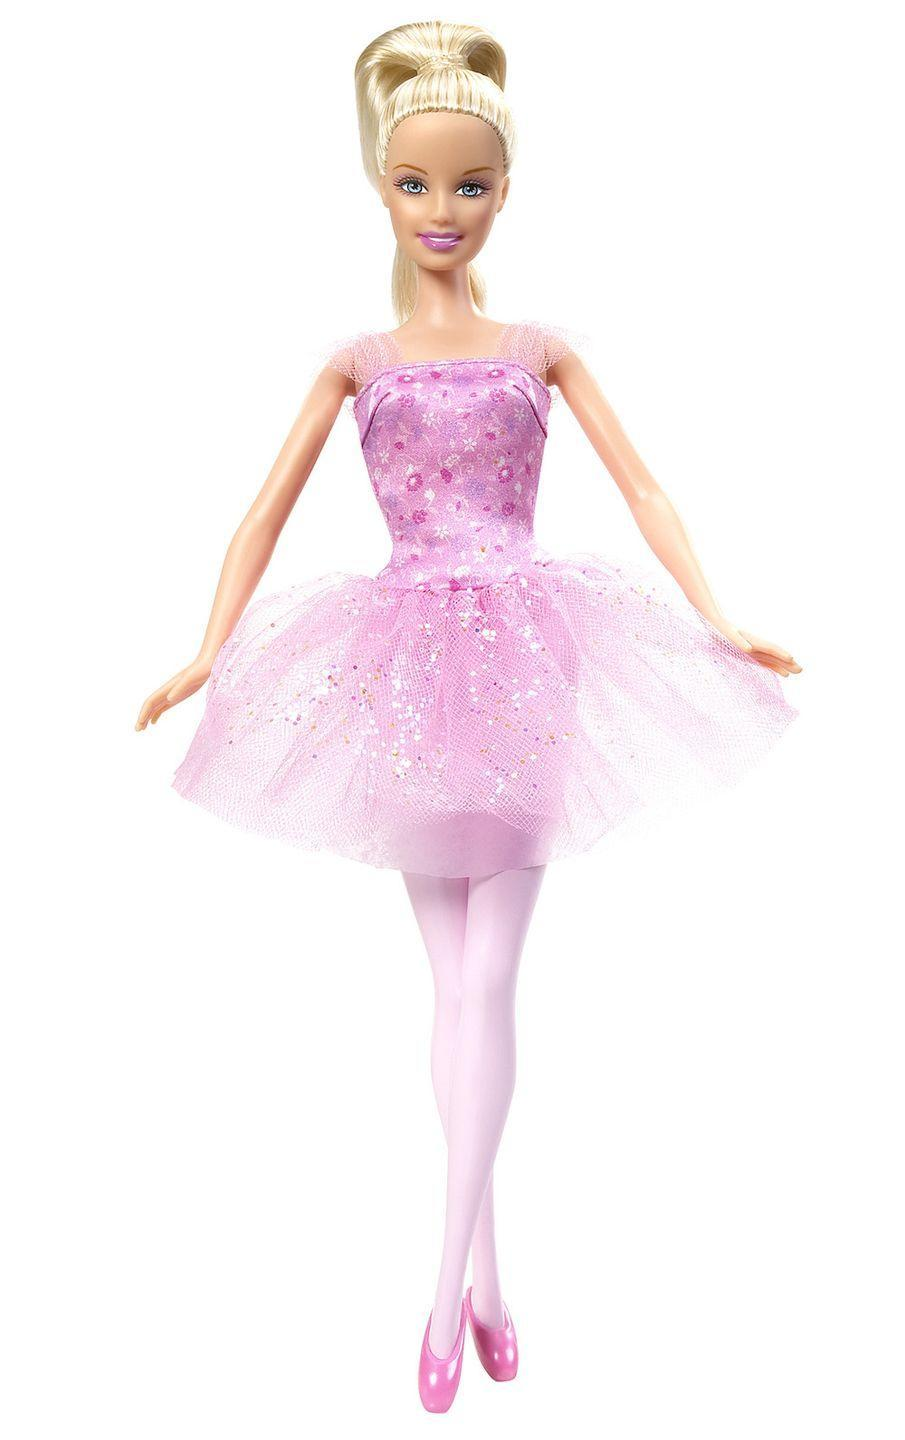 "<p>Like the '70s ballerina look, 2006's Ballerina Barbie wears a tutu and pointe shoes, but in her signature pink. </p><p><a href=""http://www.goodhousekeeping.com/beauty/nails/g3203/coffin-nails-designs/"" rel=""nofollow noopener"" target=""_blank"" data-ylk=""slk:13 ways with ballerina nails »"" class=""link rapid-noclick-resp""><em>13 ways with ballerina nails »</em></a></p>"